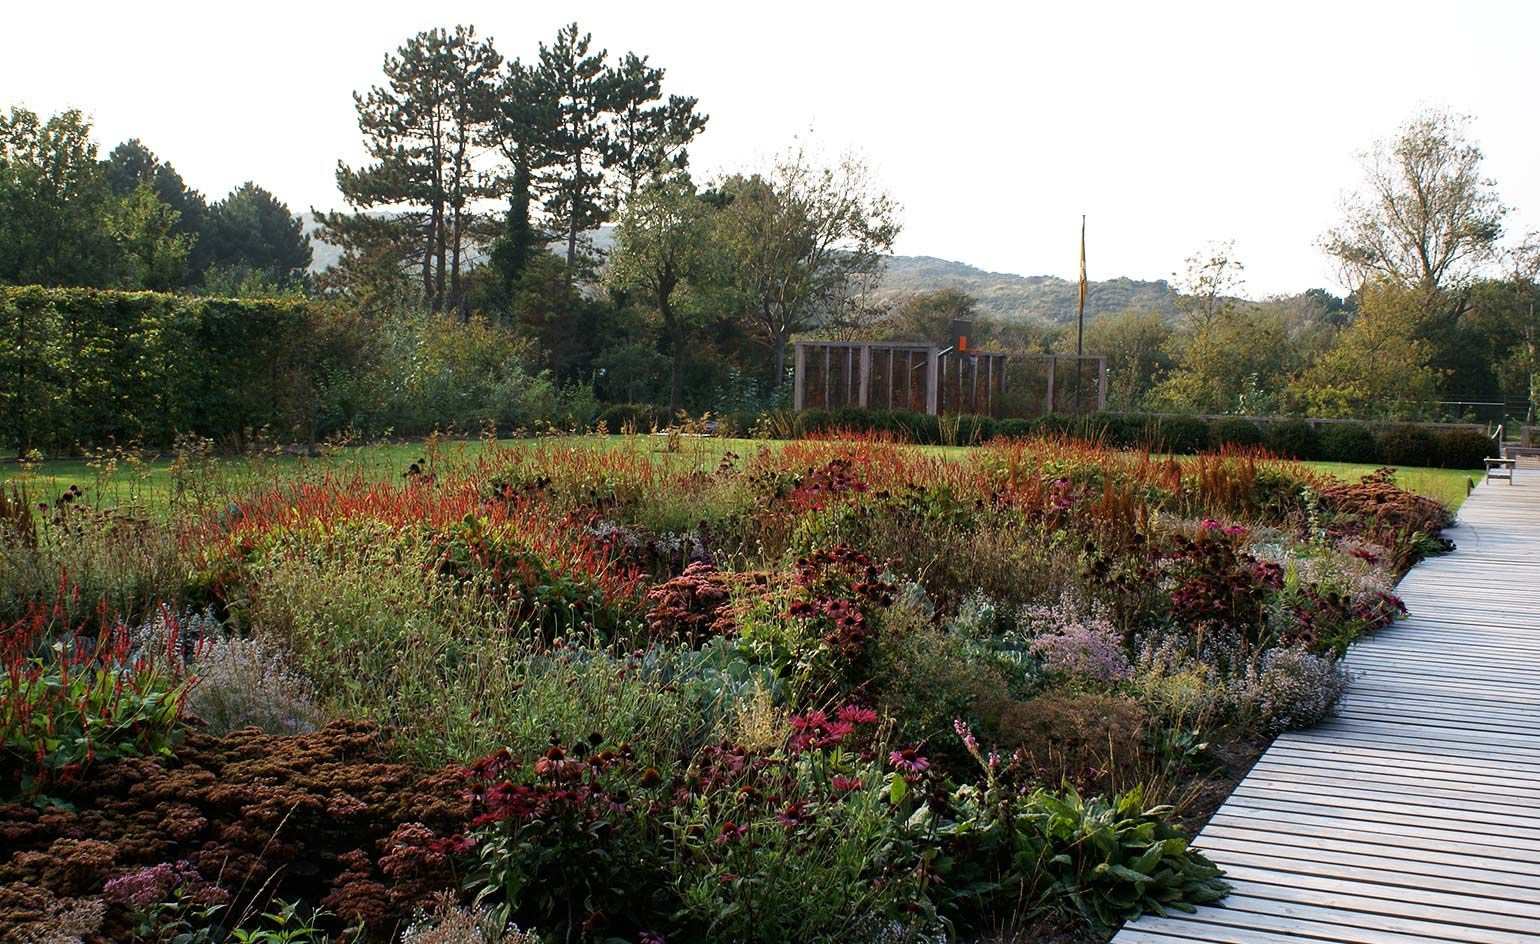 Herbal high: the best landscape architecture across the world ...